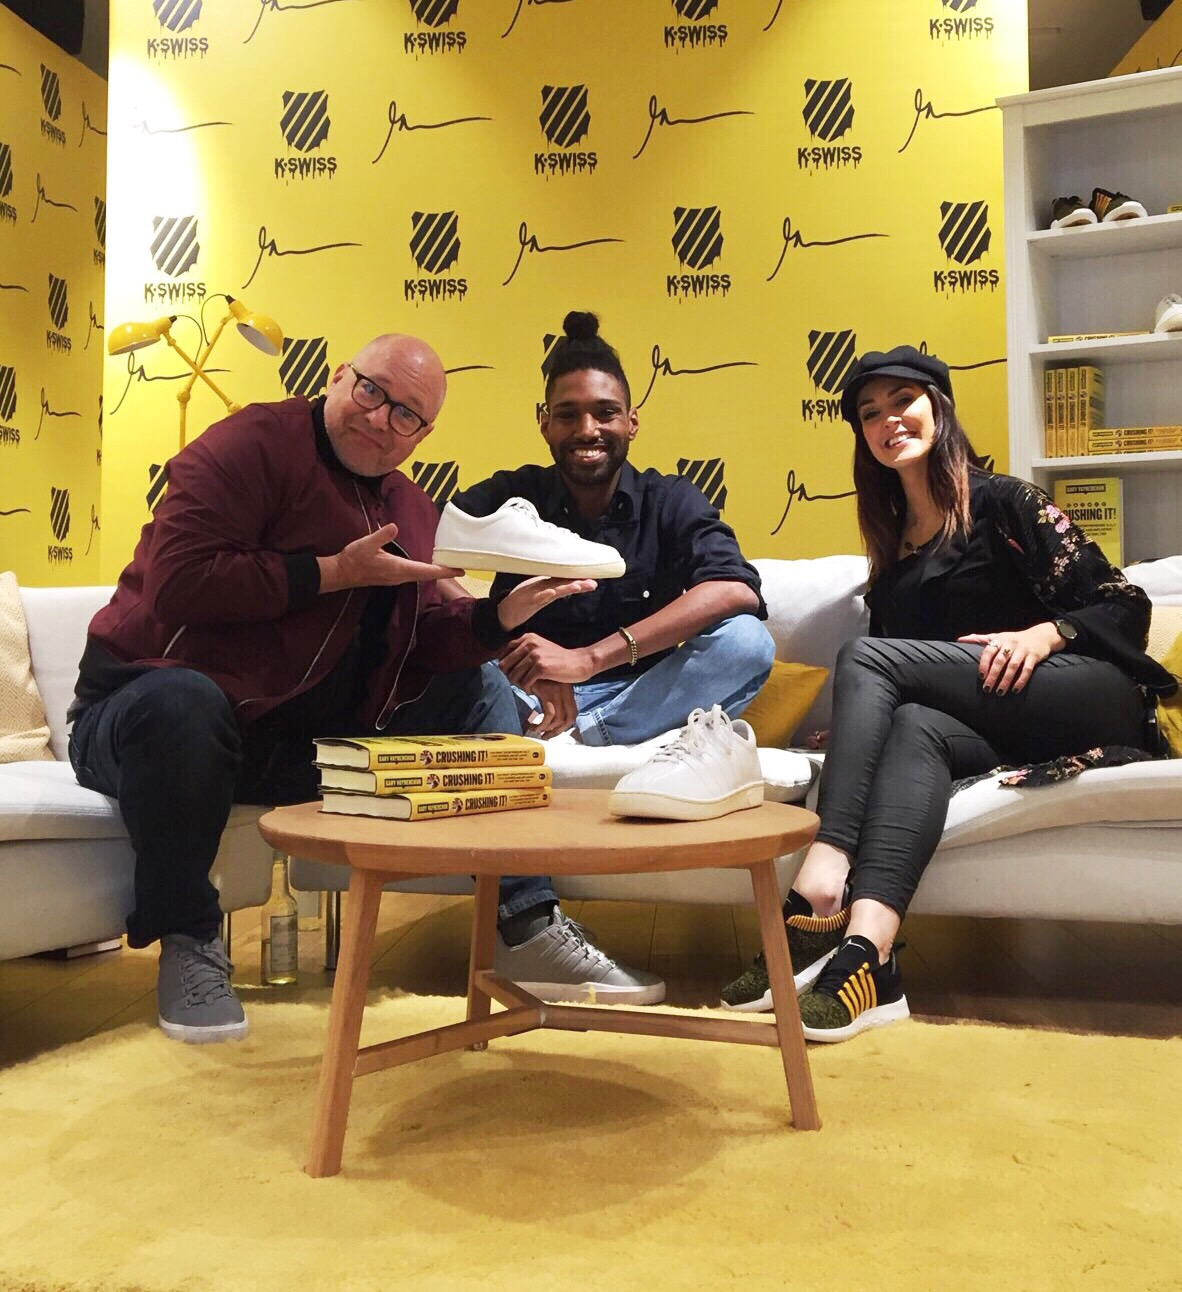 CEO'S WEAR SNEAKERS PODCAST - ON CONJUNCTION WITH GARY V AND K.SWISS